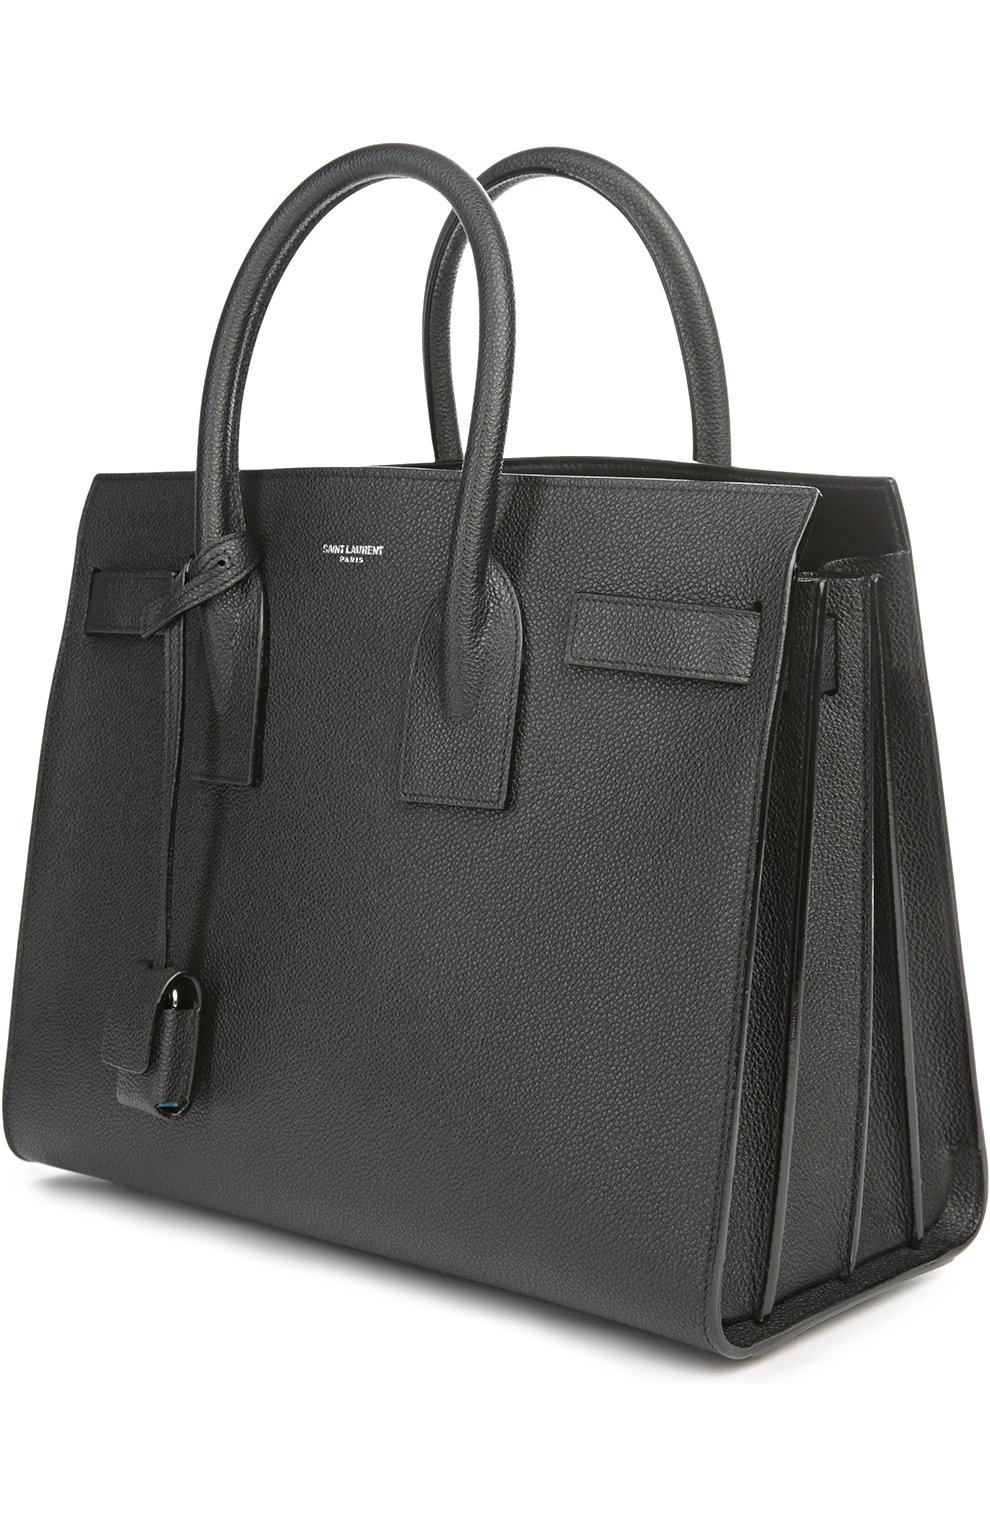 Сумка Sac De Jour Saint Laurent черная | Фото №3